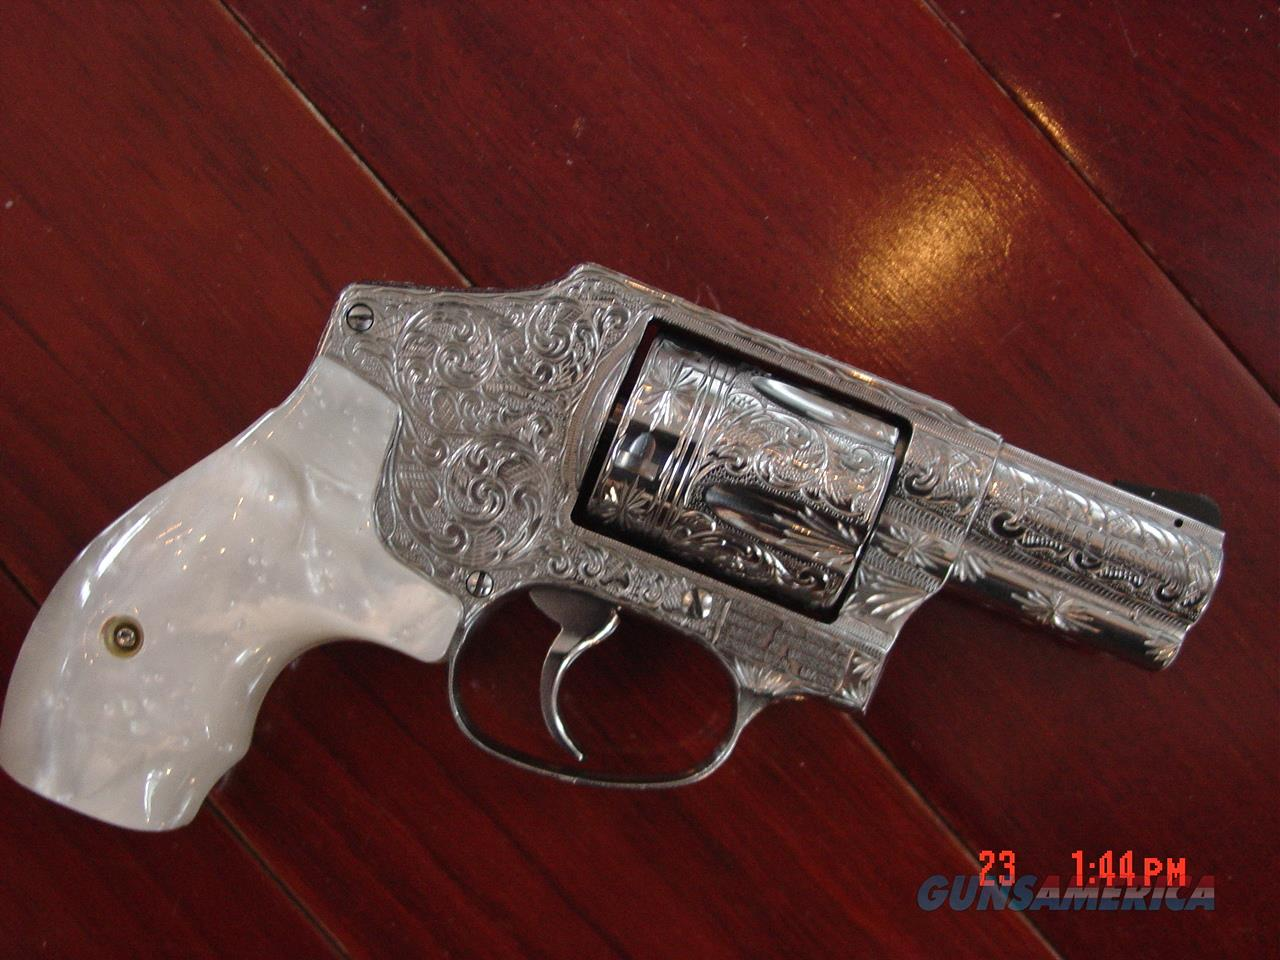 "Smith & Wesson 640-3,357MAG,fully deep hand engraved by Flannery Engraving,Pearlite grips,2.125"",never fired,a true work of art pocket cannon !!  Guns > Pistols > Smith & Wesson Revolvers > Pocket Pistols"